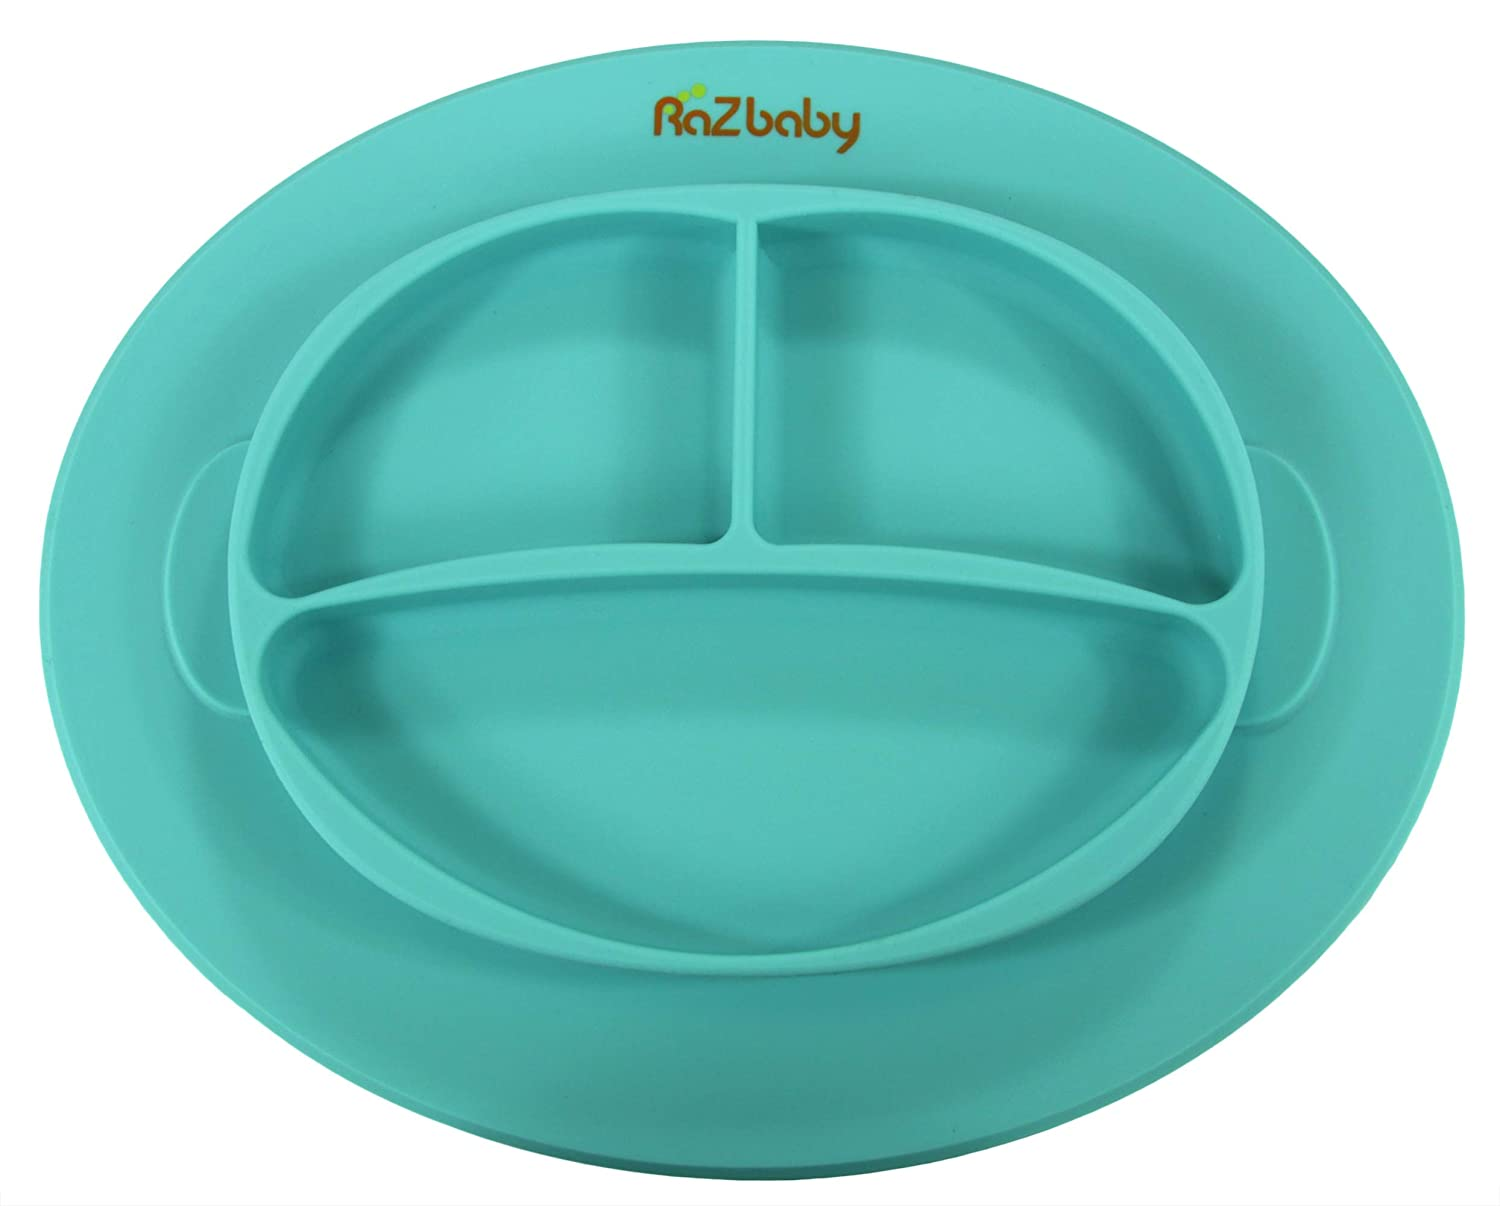 RaZbaby RaZ-Plate Silicone Suction Baby Plate First Foods Blue Perfect for Led Weaning Built-in Place-Mat for Infants Babys First Plate Stays in Place Less Mess Self-Feeding Toddlers